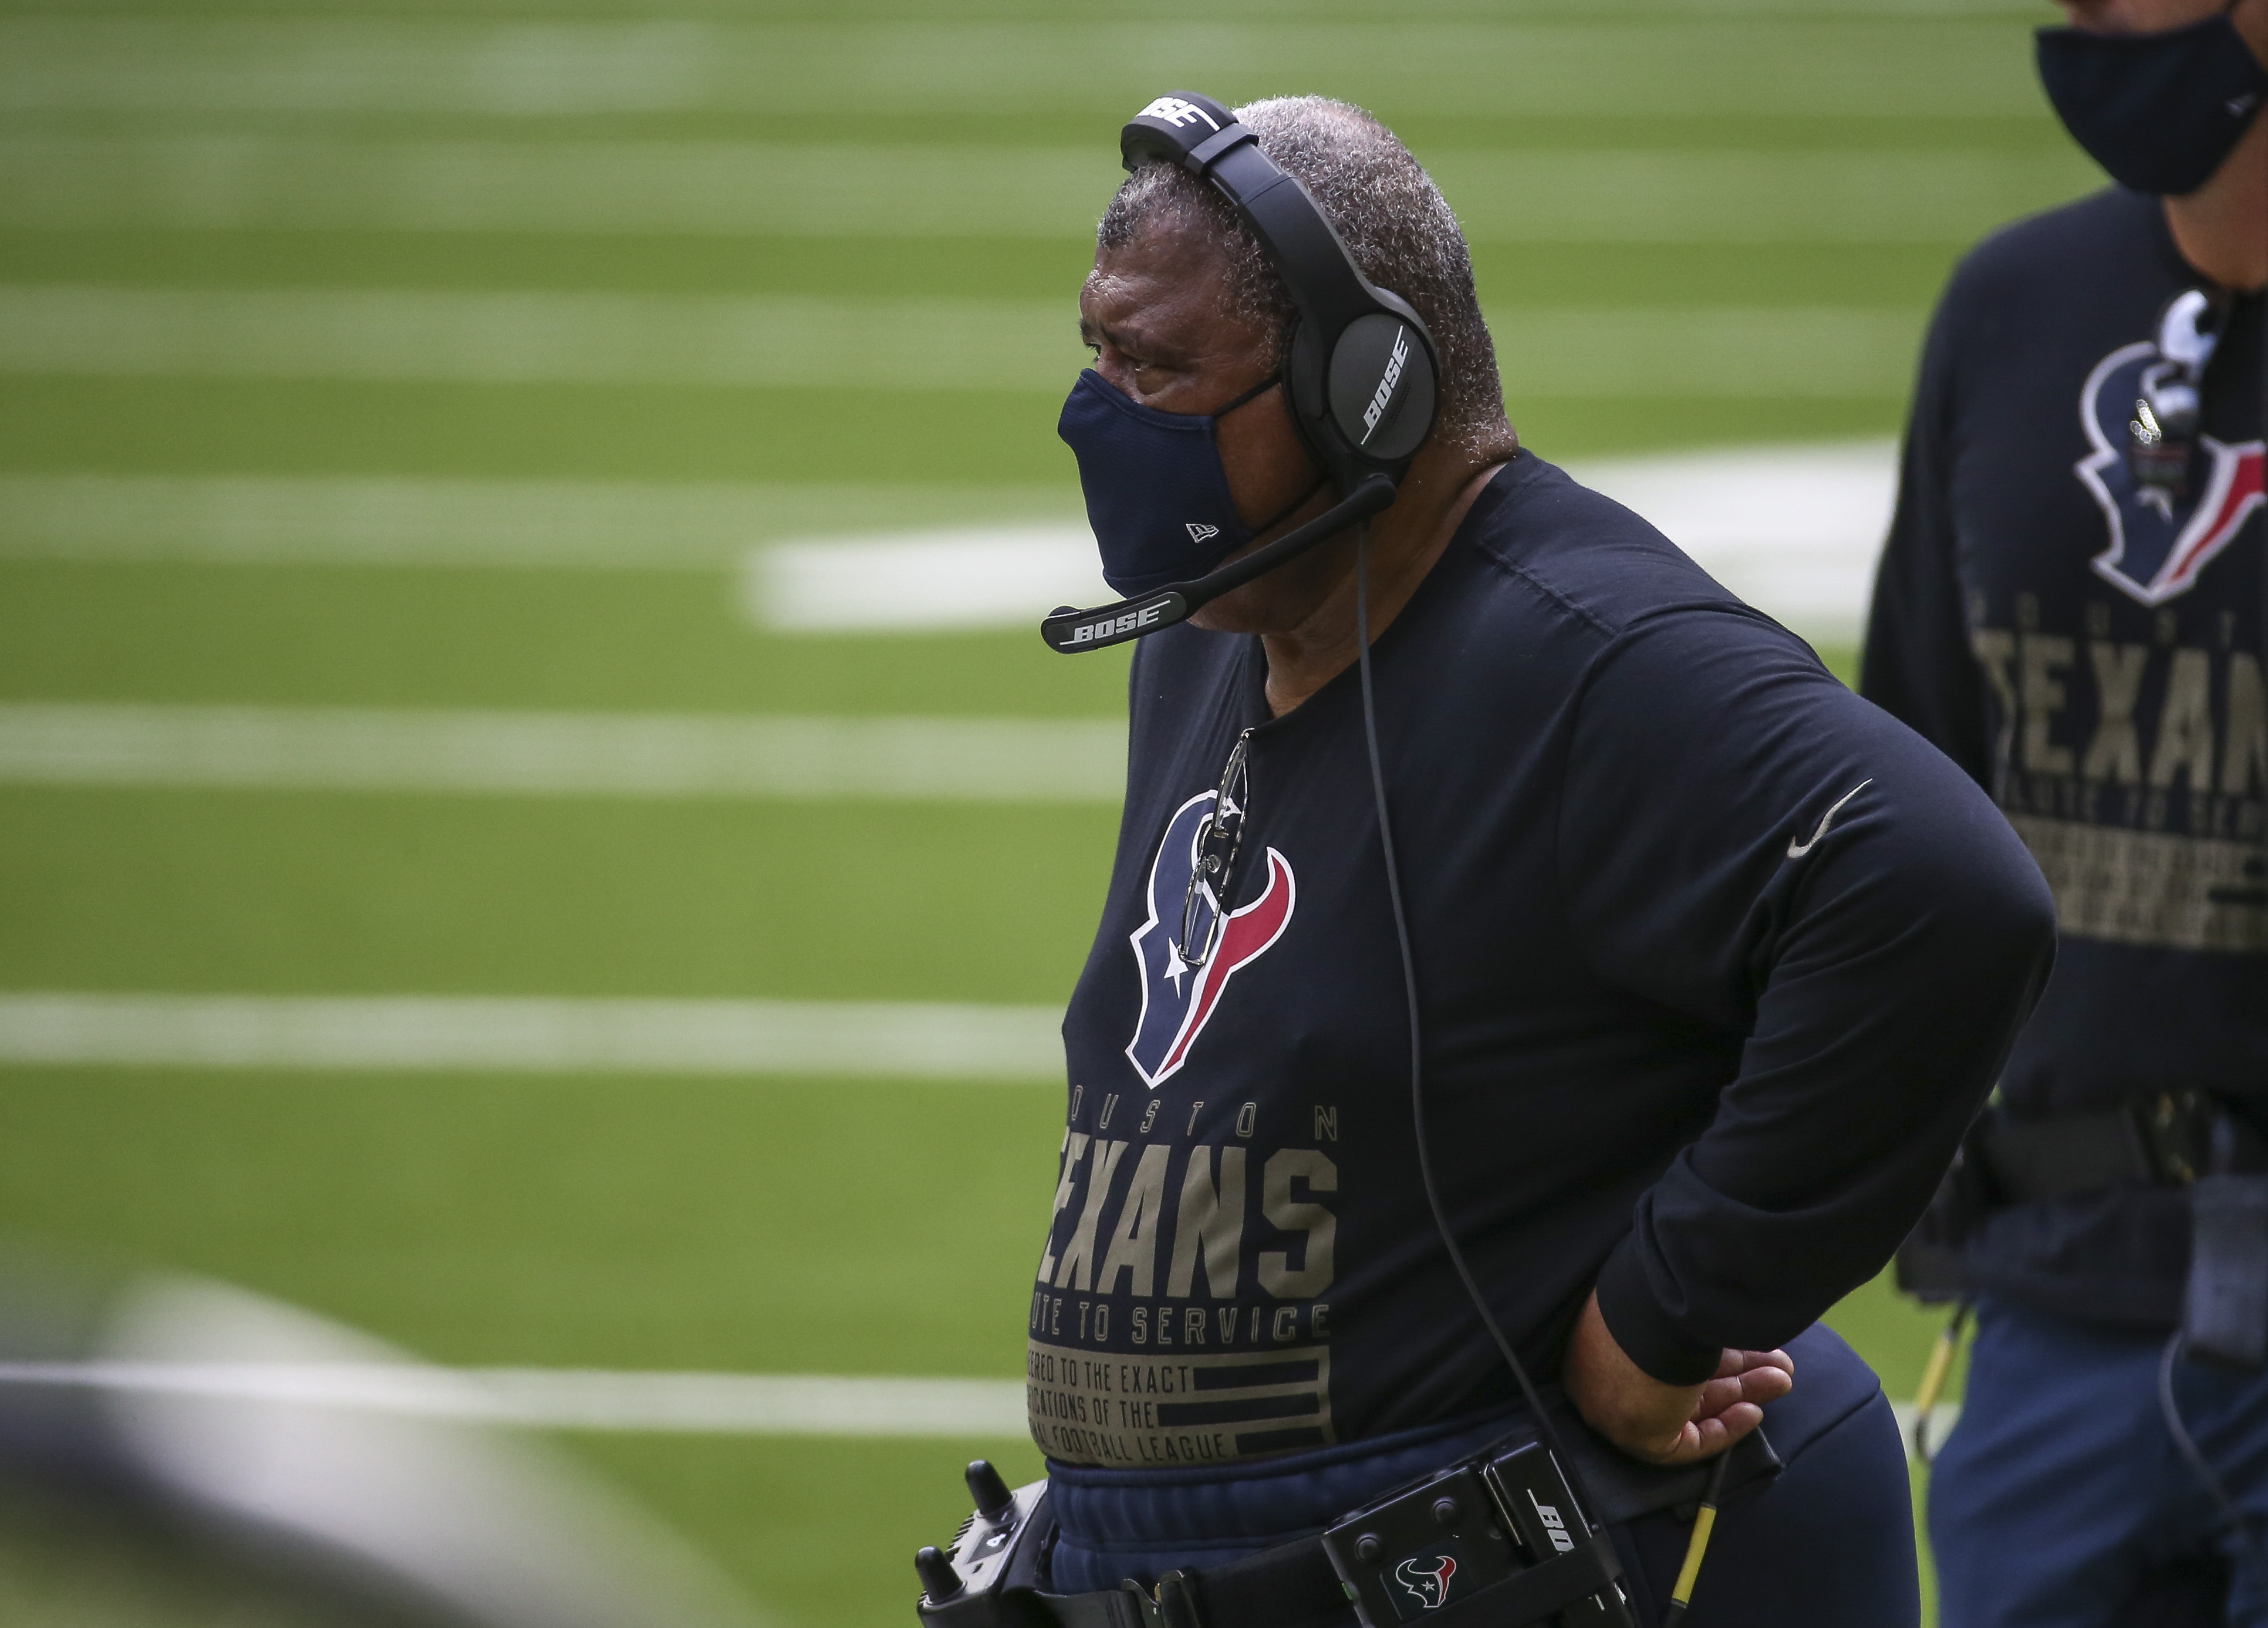 Texans playing well, yet rumors suggest Romeo Crennel won't be returning as head coach